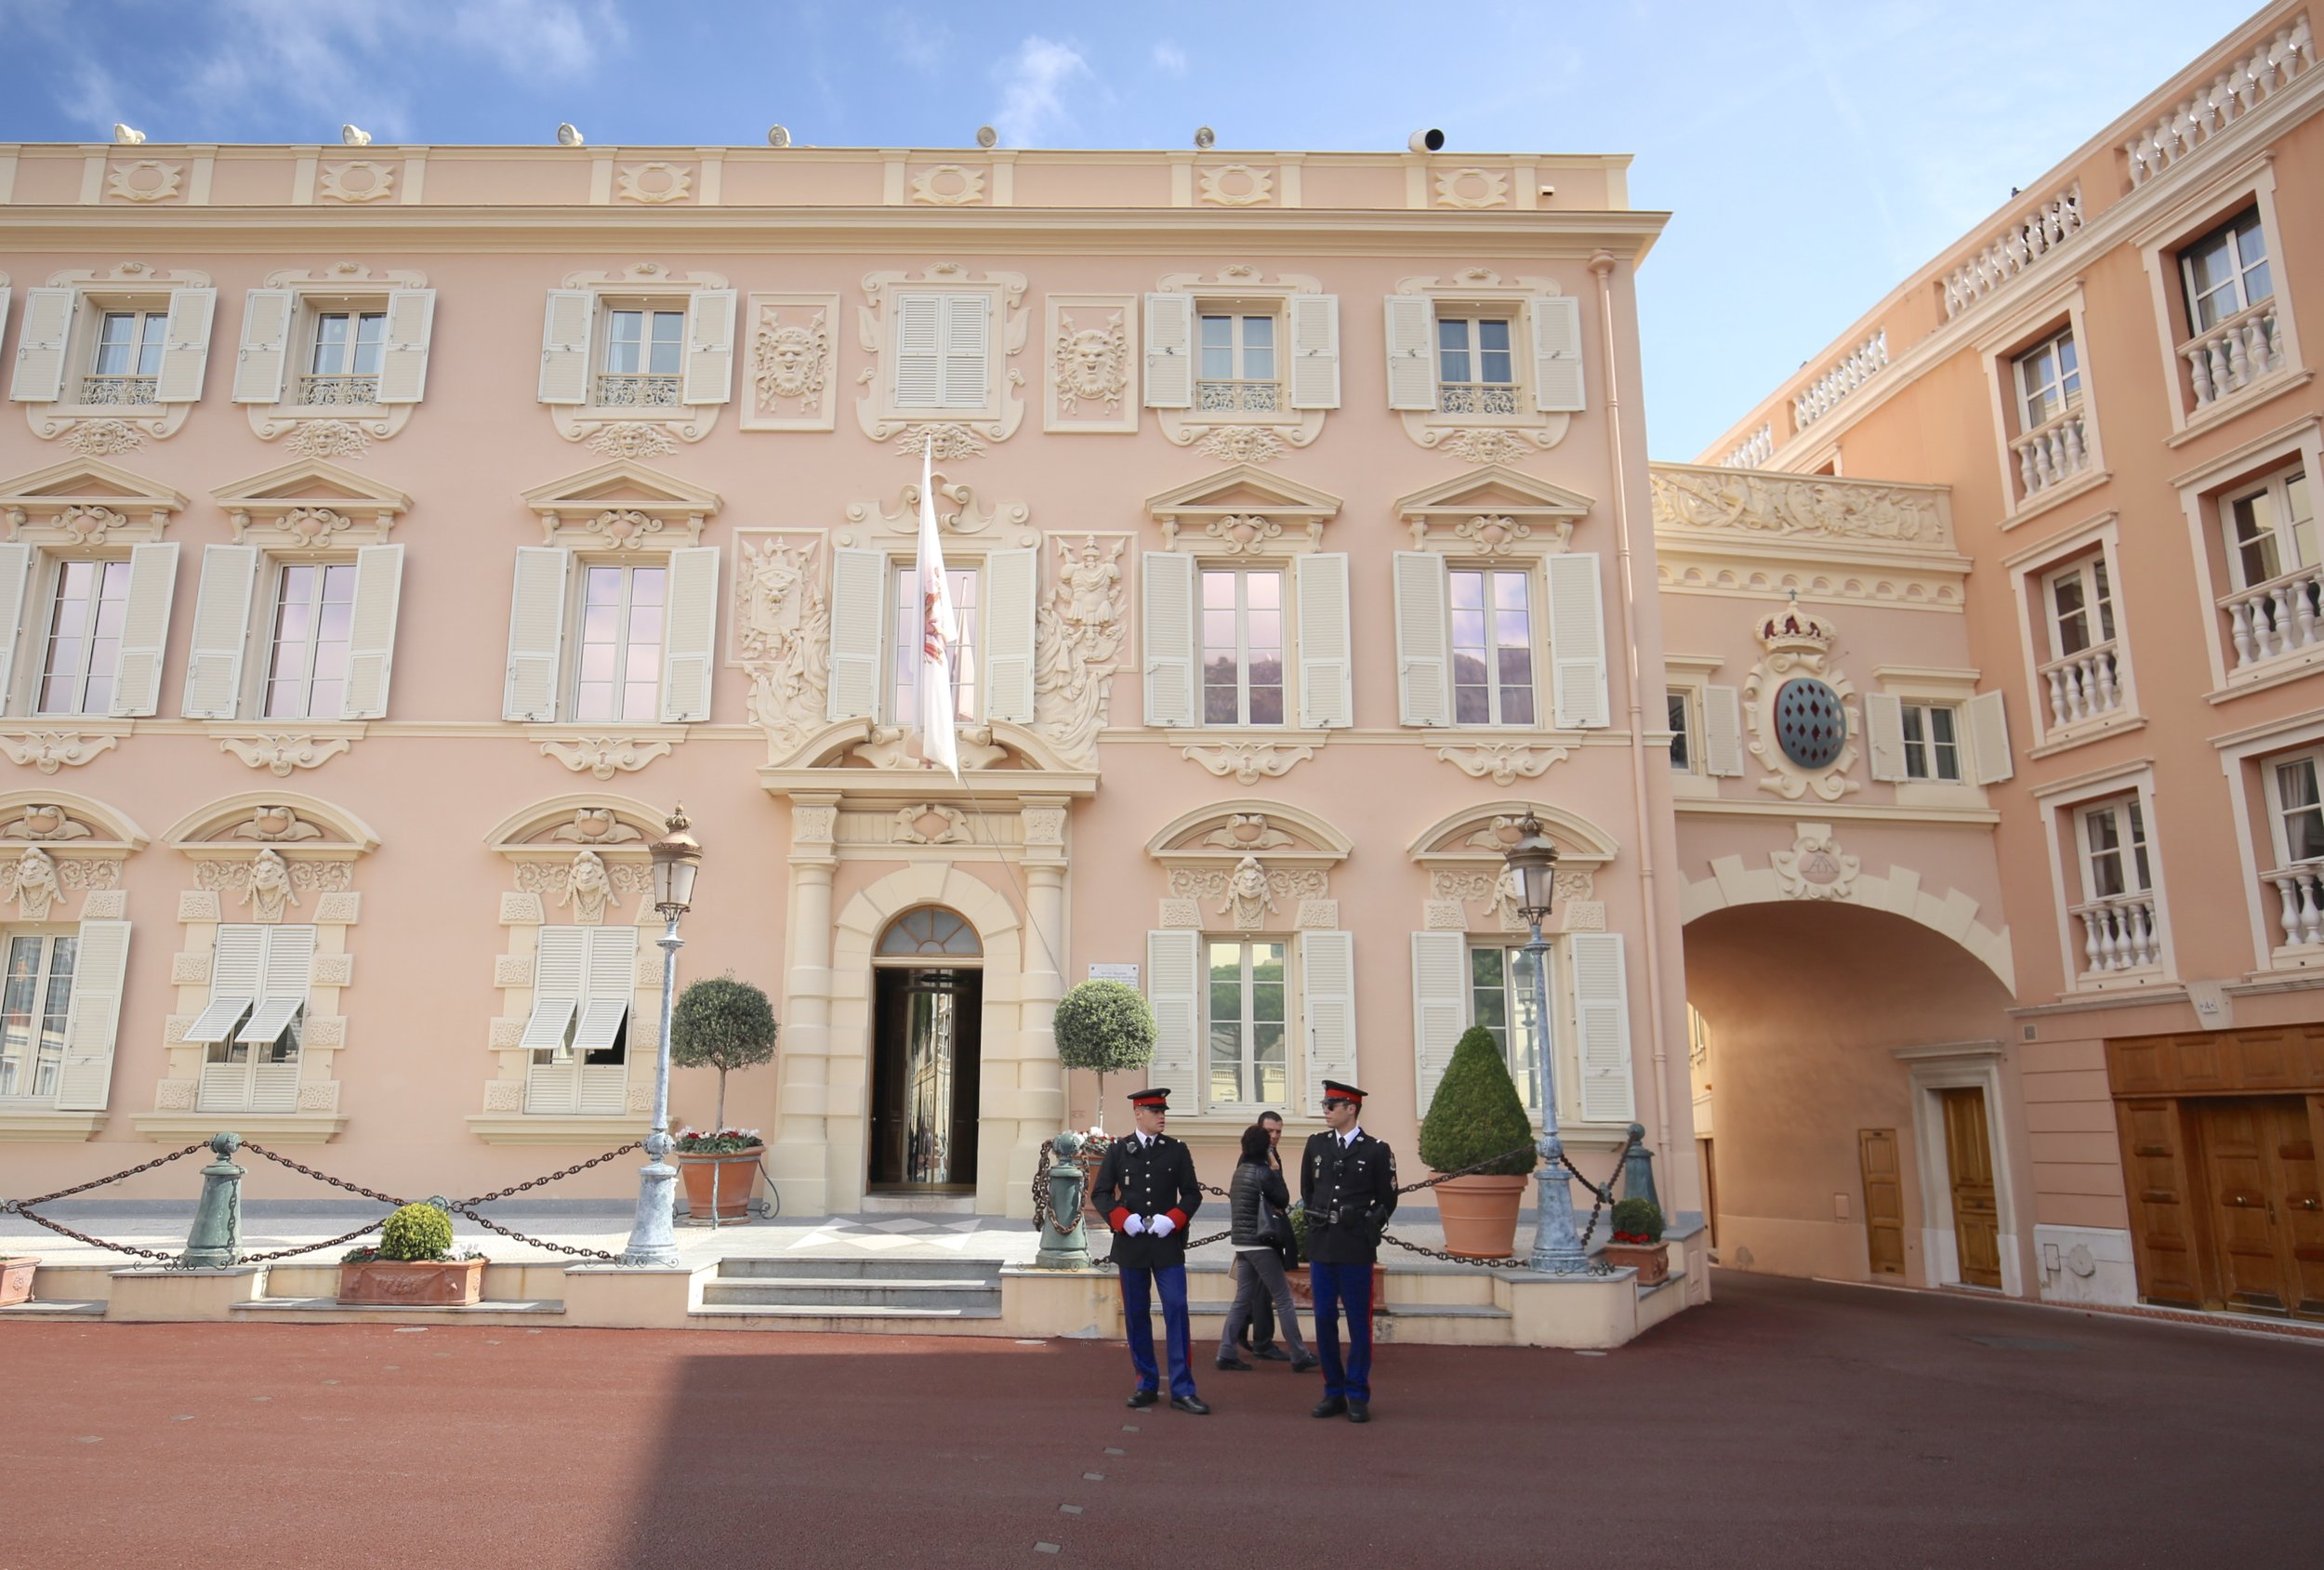 Royal police hang around a perfect pink cookie cutter building, Monaco.